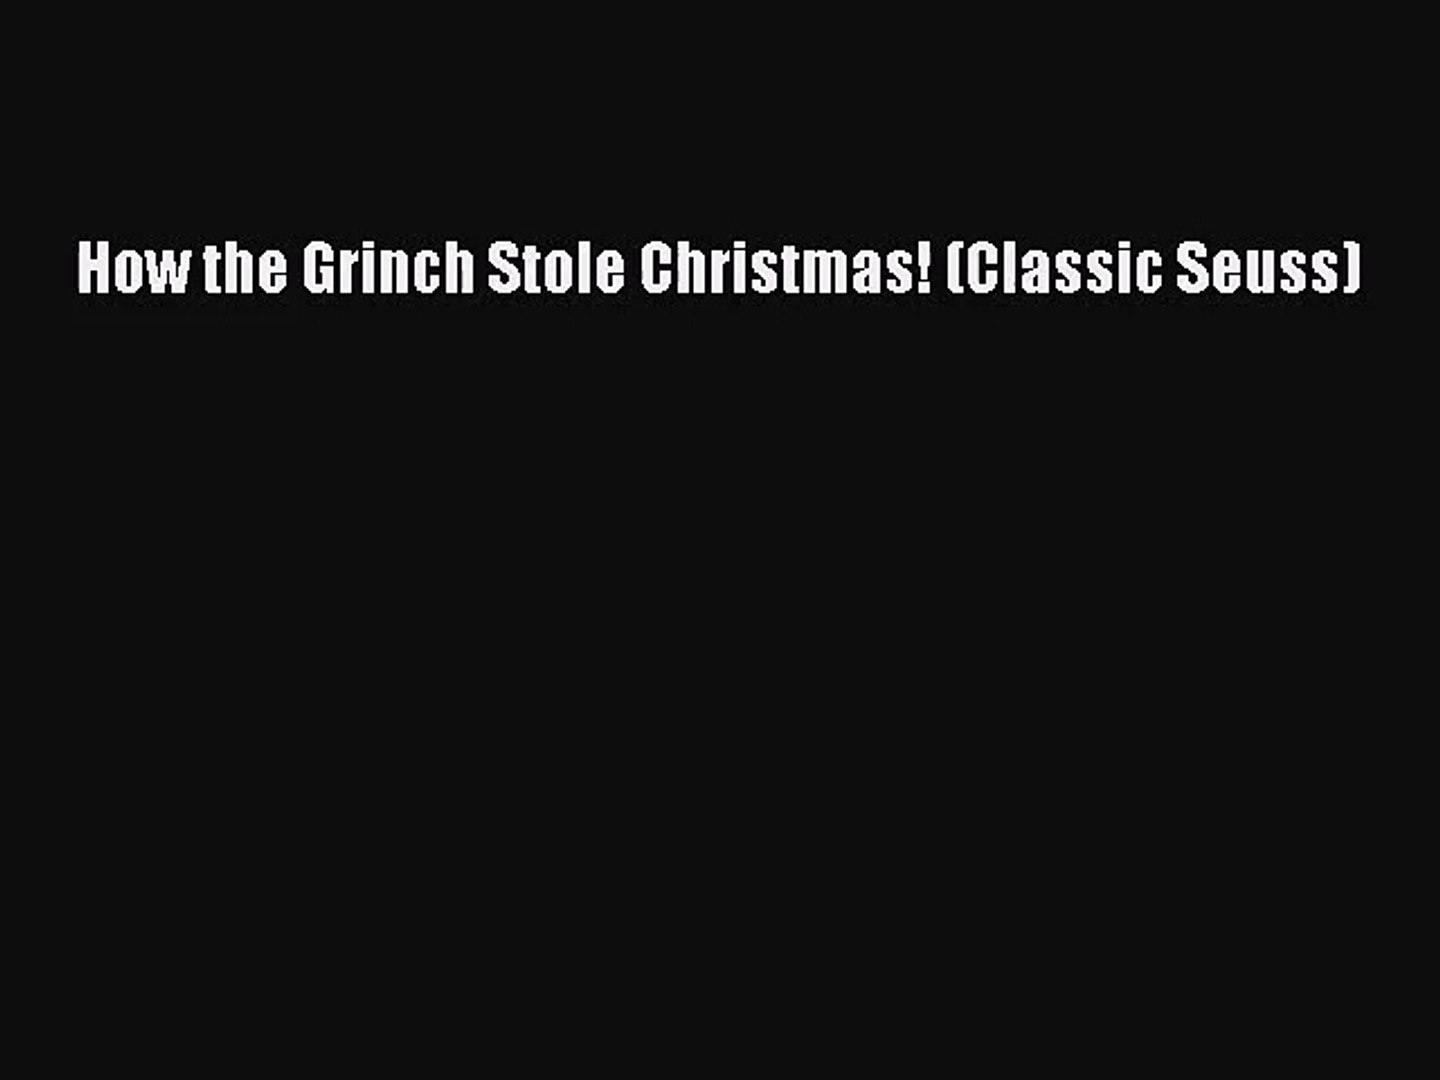 How The Grinch Stole Christmas Book Pdf.Pdf Download How The Grinch Stole Christmas Classic Seuss Download Full Ebook